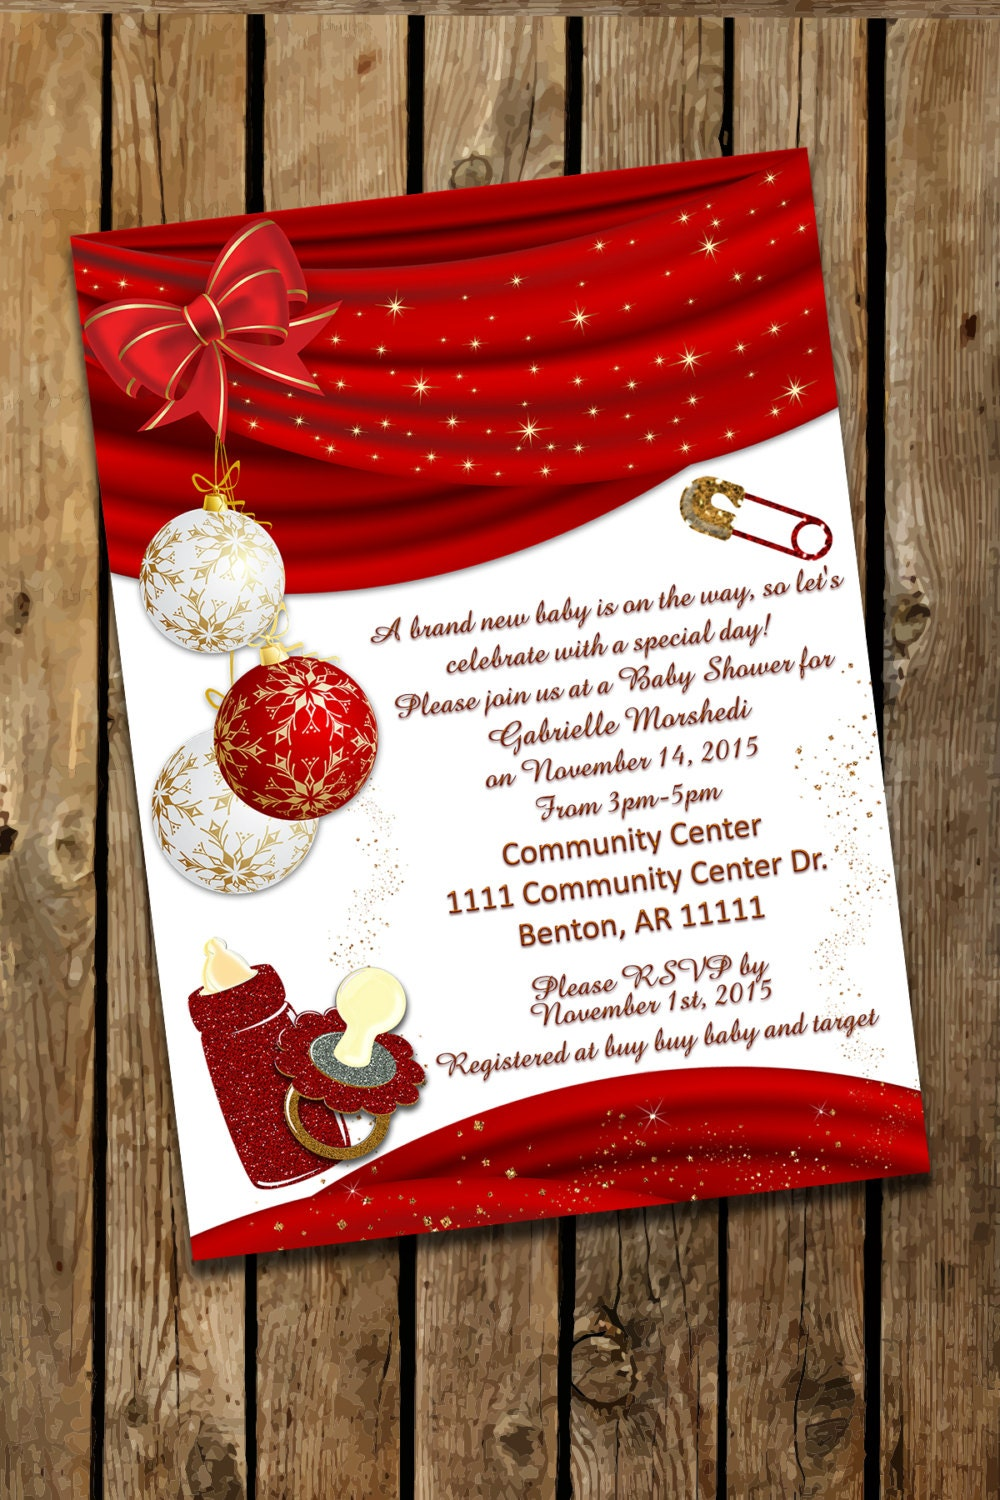 Dorable Christmas Baby Shower Invitation Photos - Invitations and ...